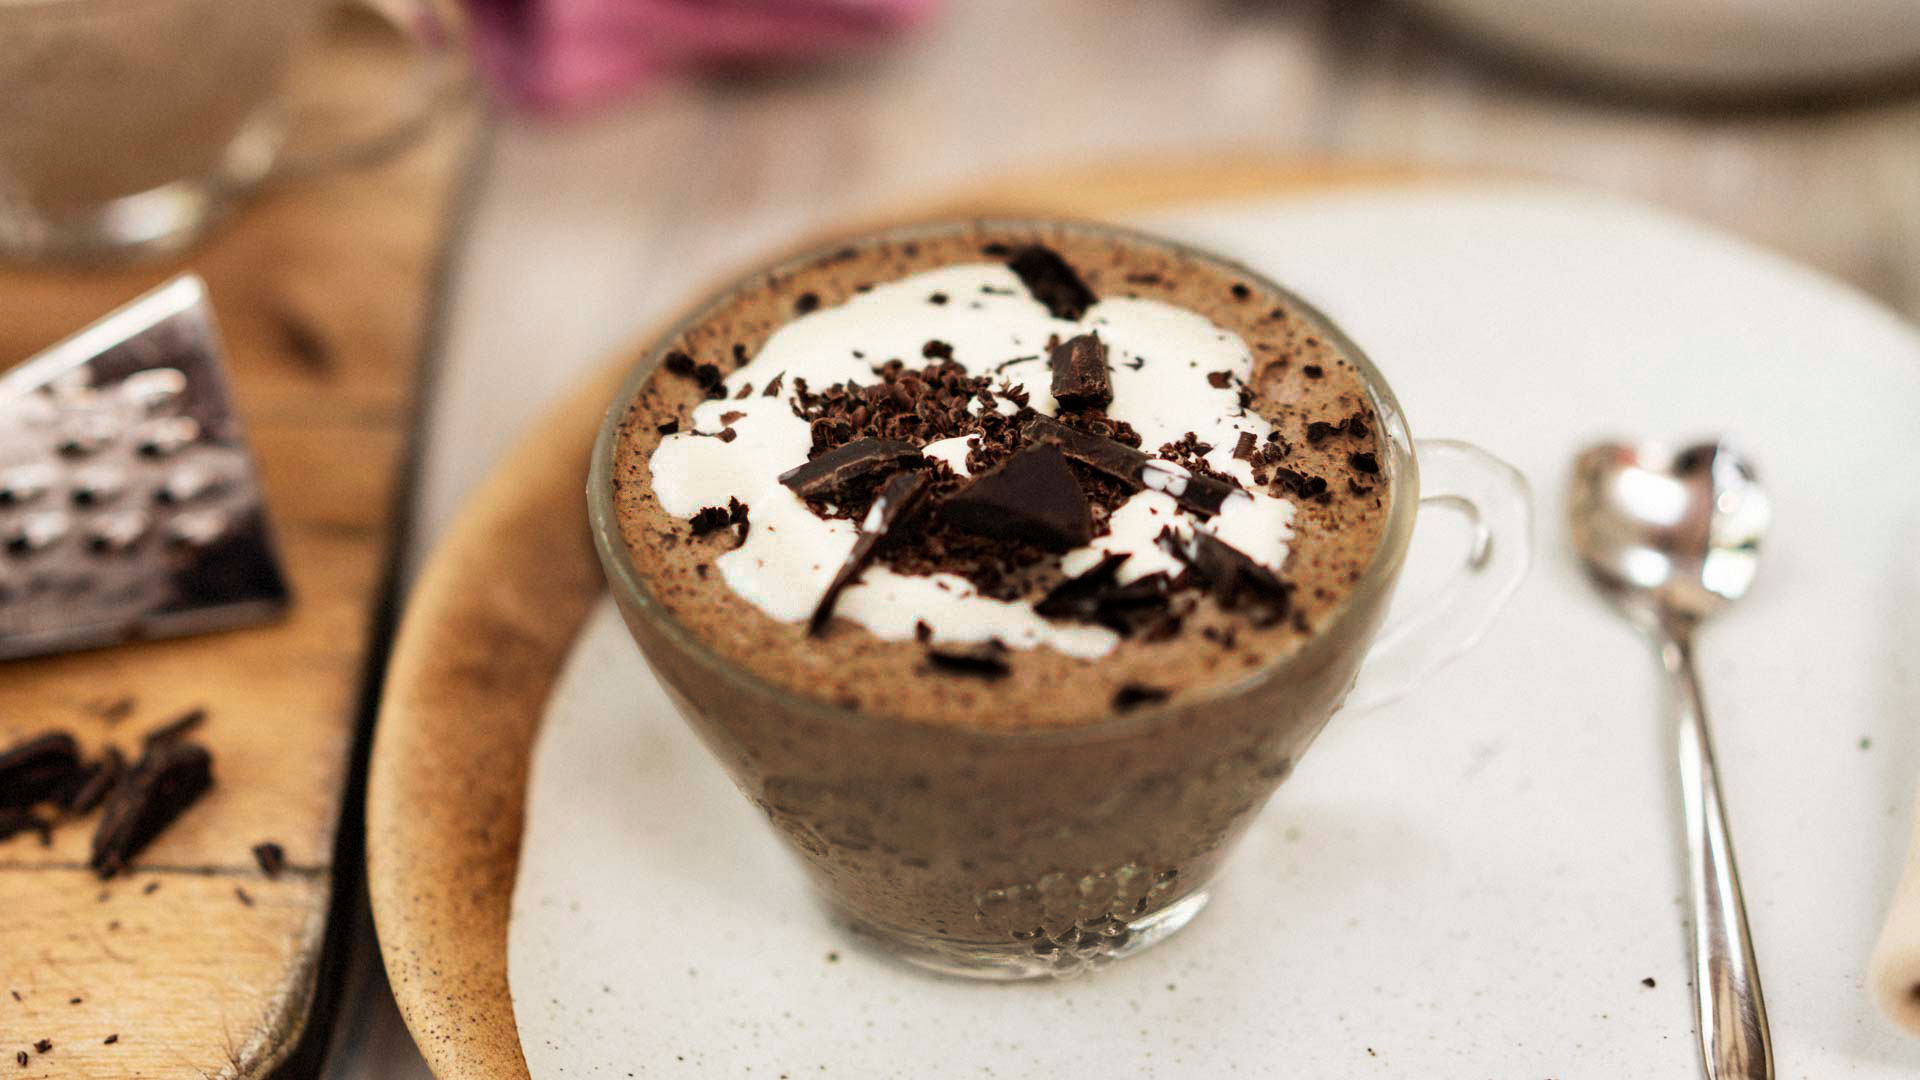 A chocolate mousse. A glass full of dessert. cream and grated chocolate on the top